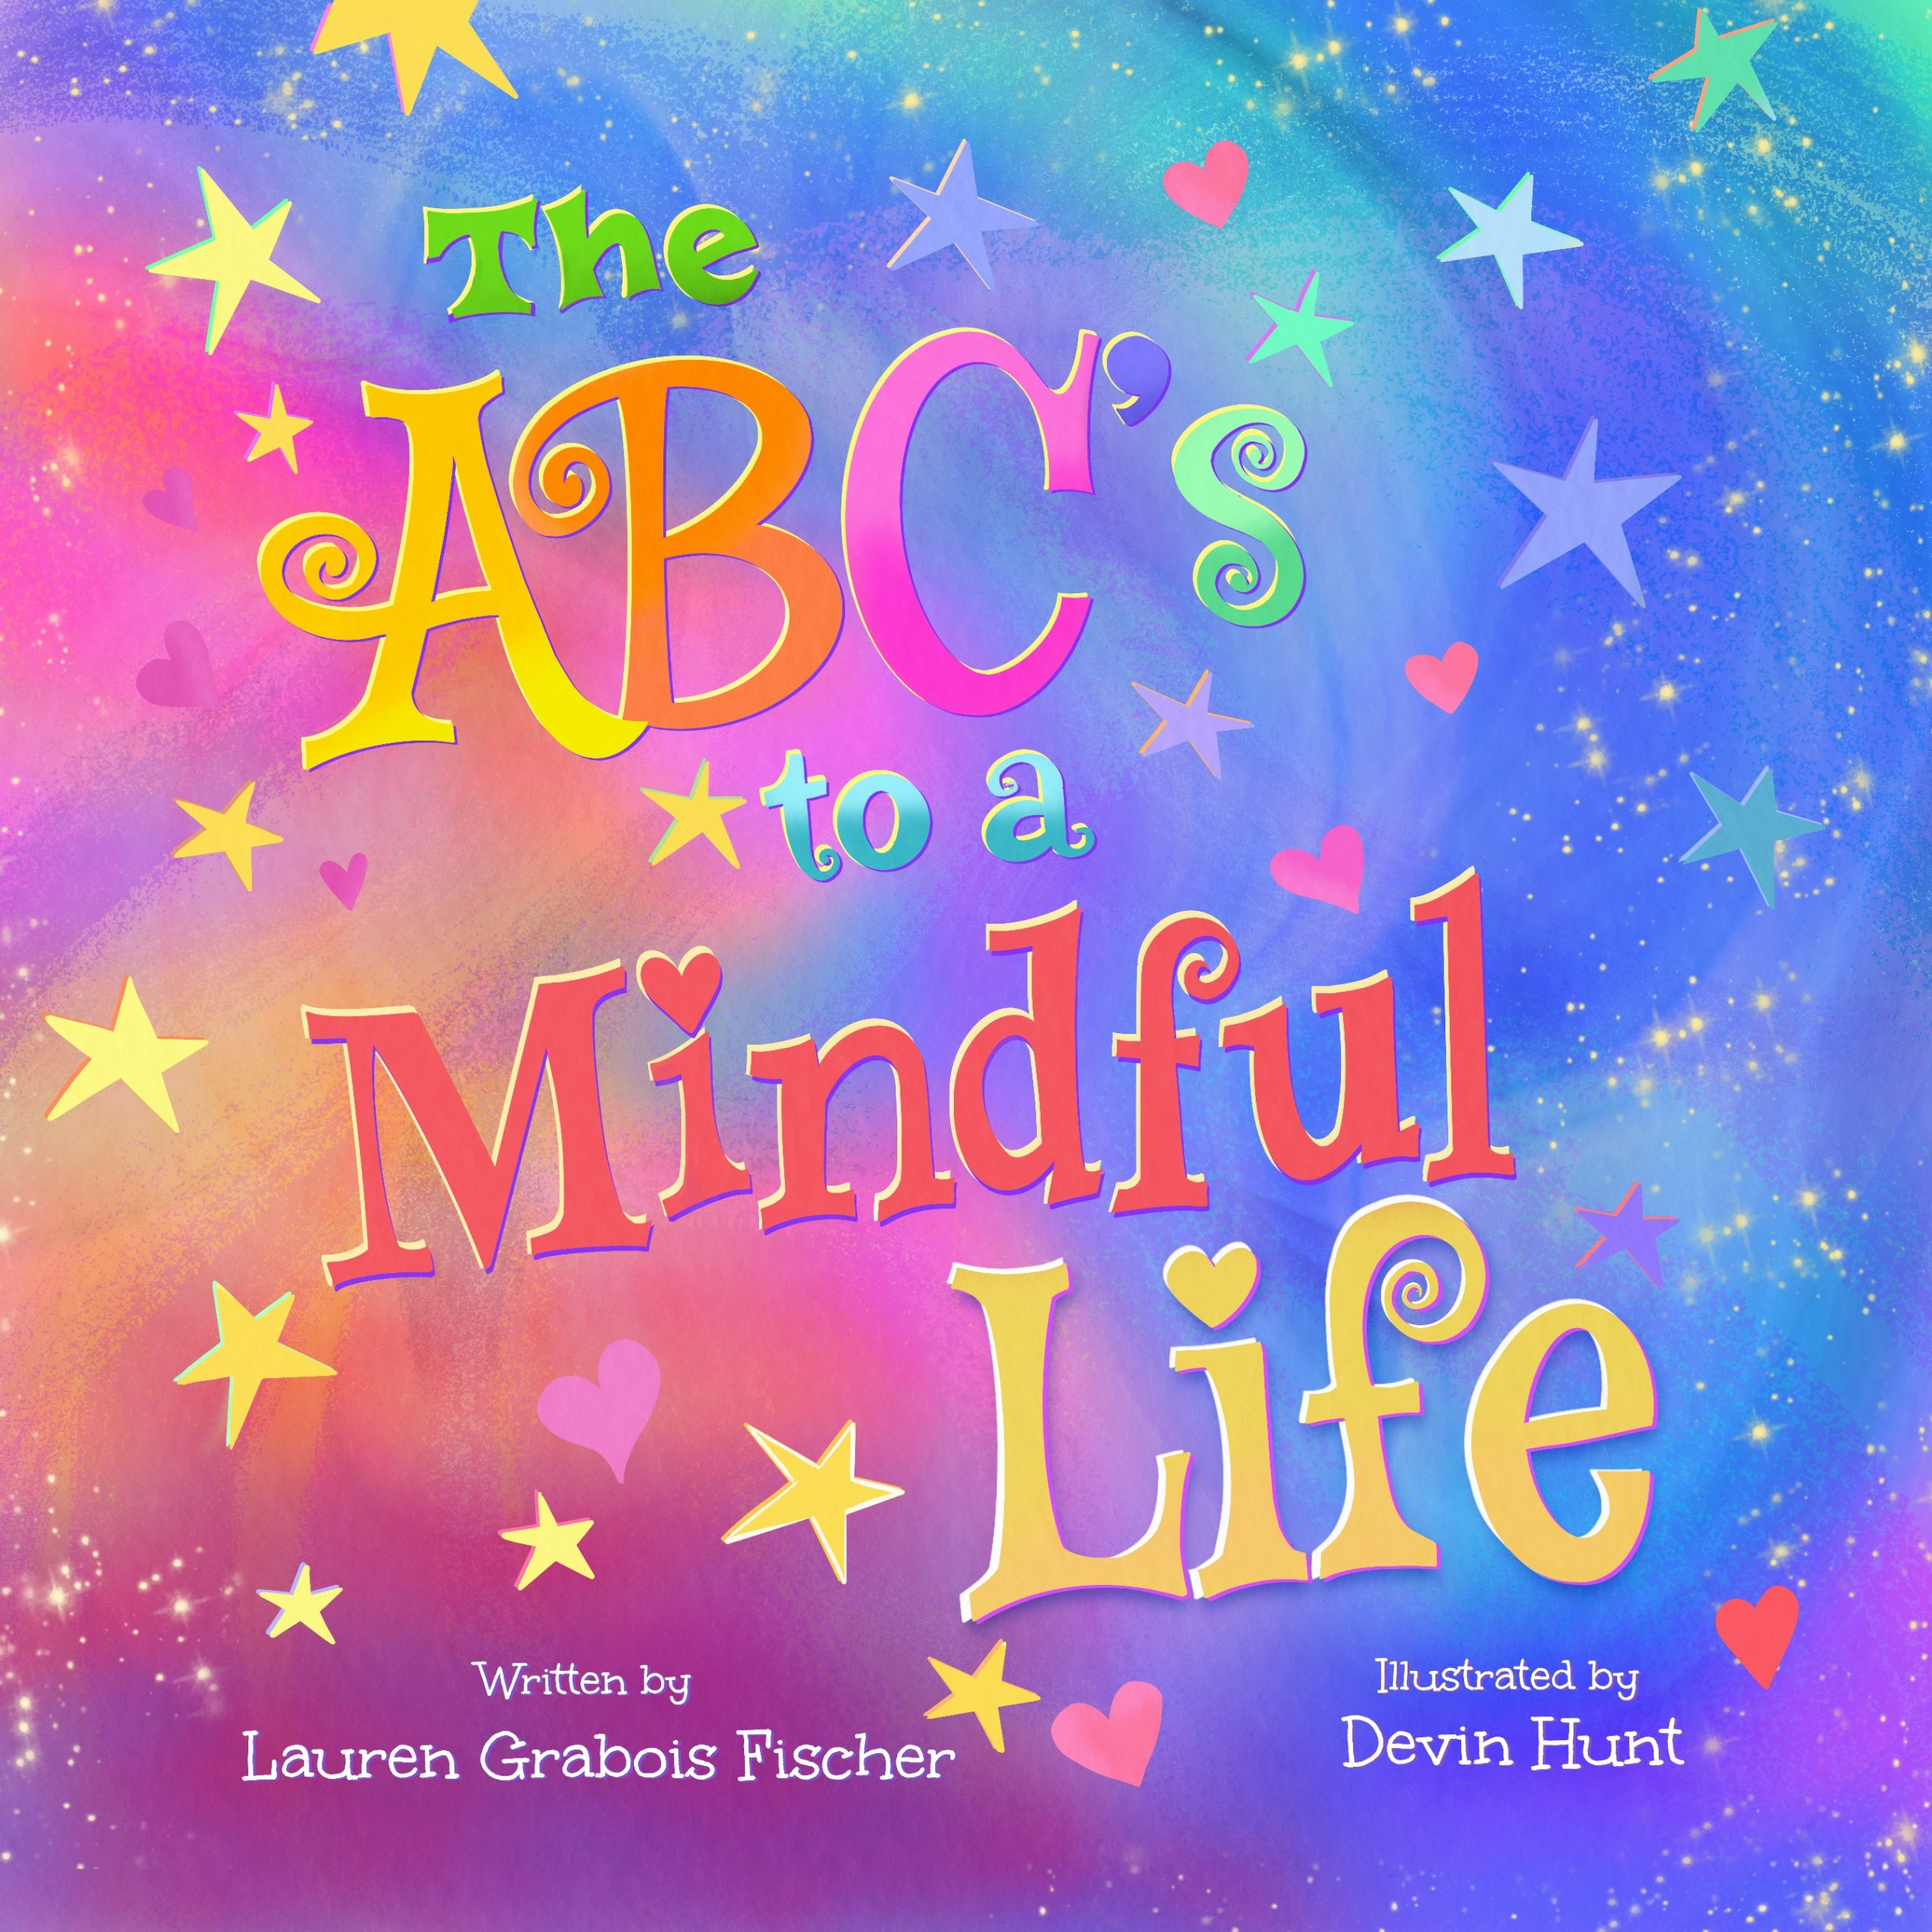 WIN: The ABC's to a Mindful Life& The Zoo's Big Newsby Lauren Grabois Fischer ~ Back to School Bash